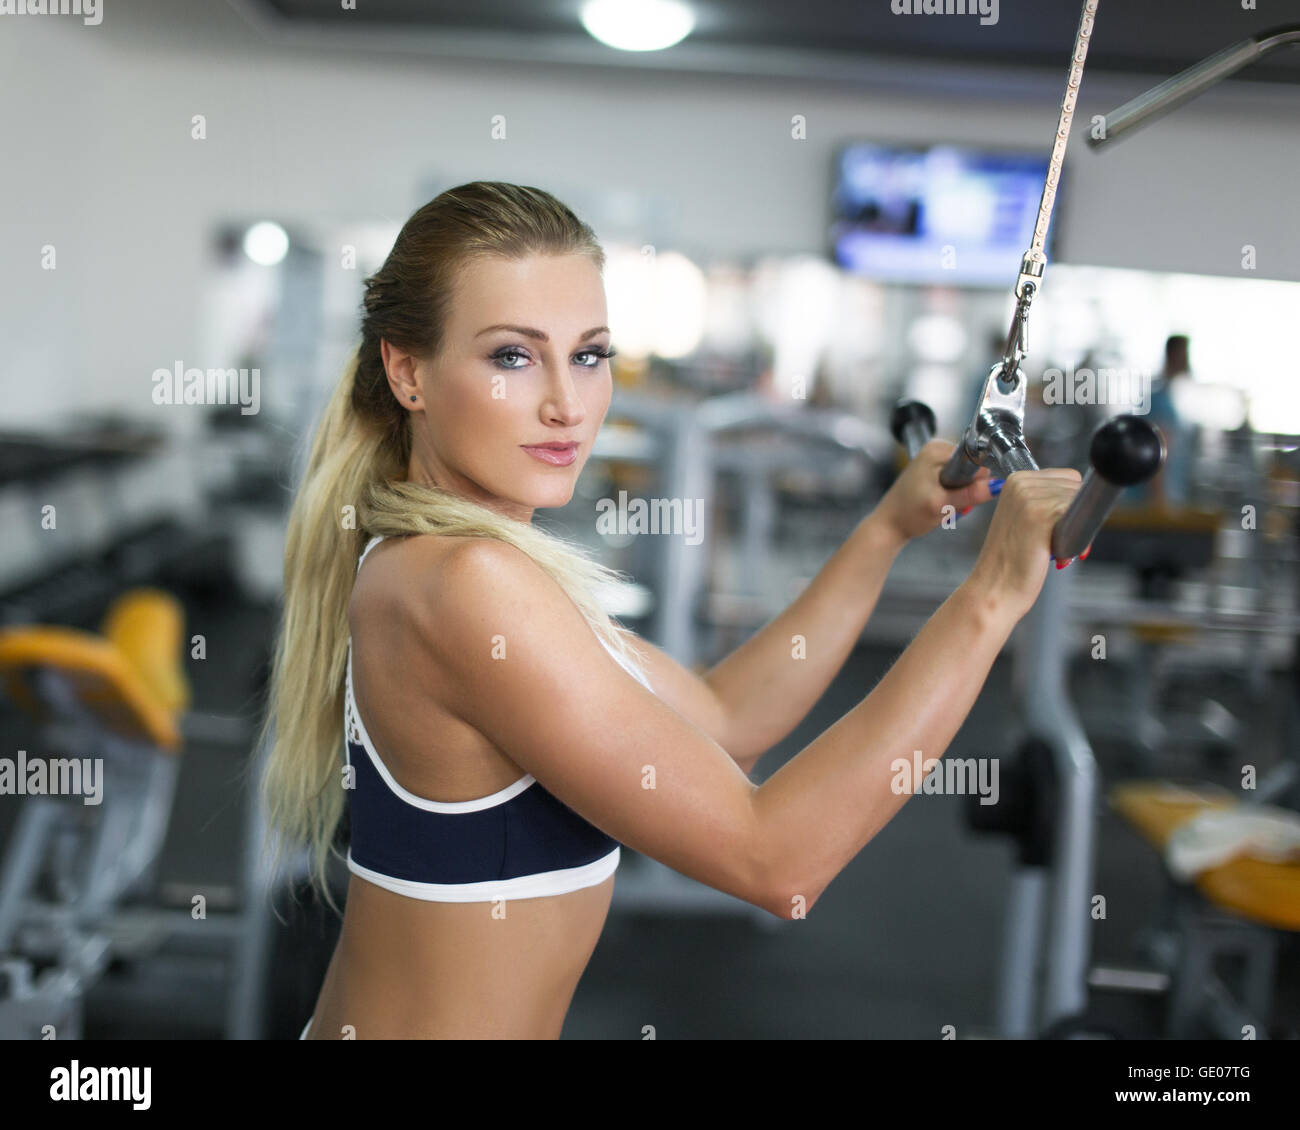 Woman doing exercise on triceps machine in gym Stock Photo